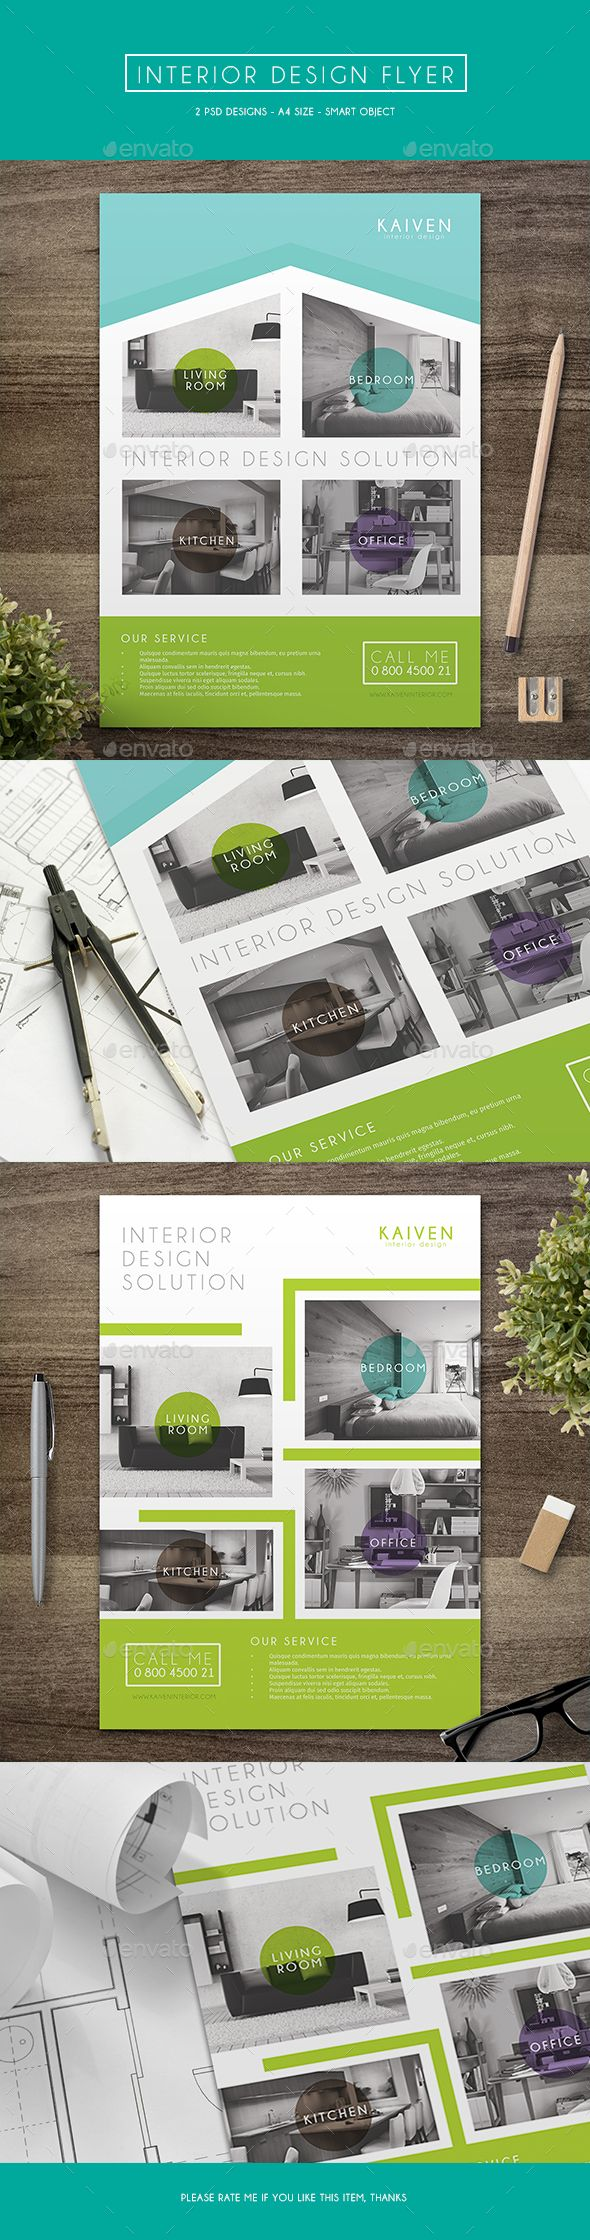 Interior Design Flyer Template PSD #design Download: http://graphicriver.net/item/interior-design-flyer/14144086?ref=ksioks